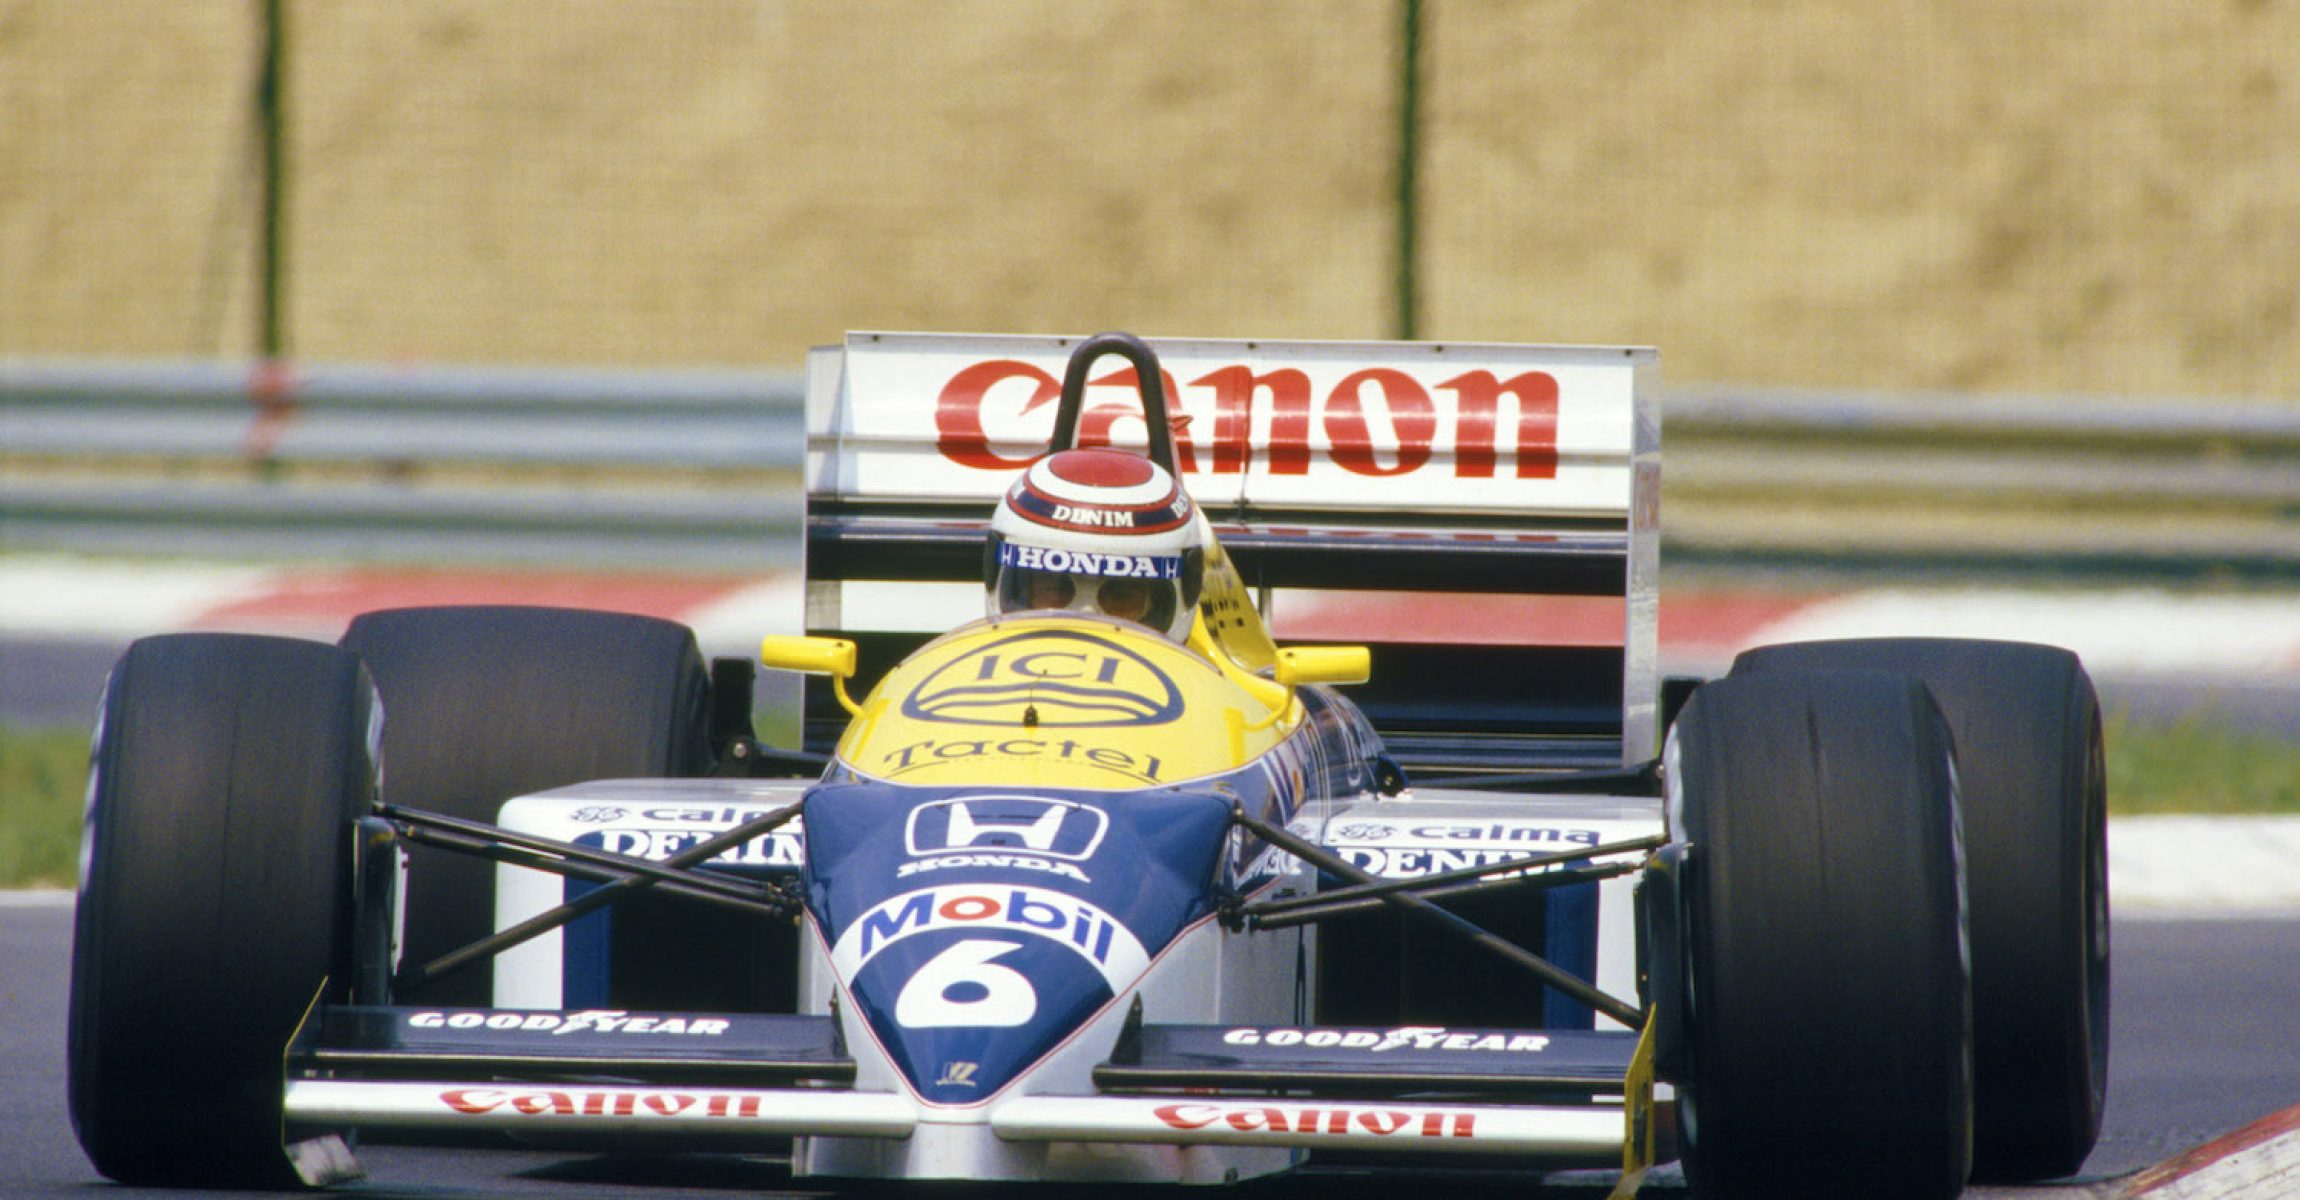 Hungaroring, Hungary, 8th - 10th August 1986, RD11. Nelson Piquet drives the Williams FW11-Honda to 1st position, position in the race. Action. Photo: LAT Photographic/Williams F1. Ref: 1986williams04